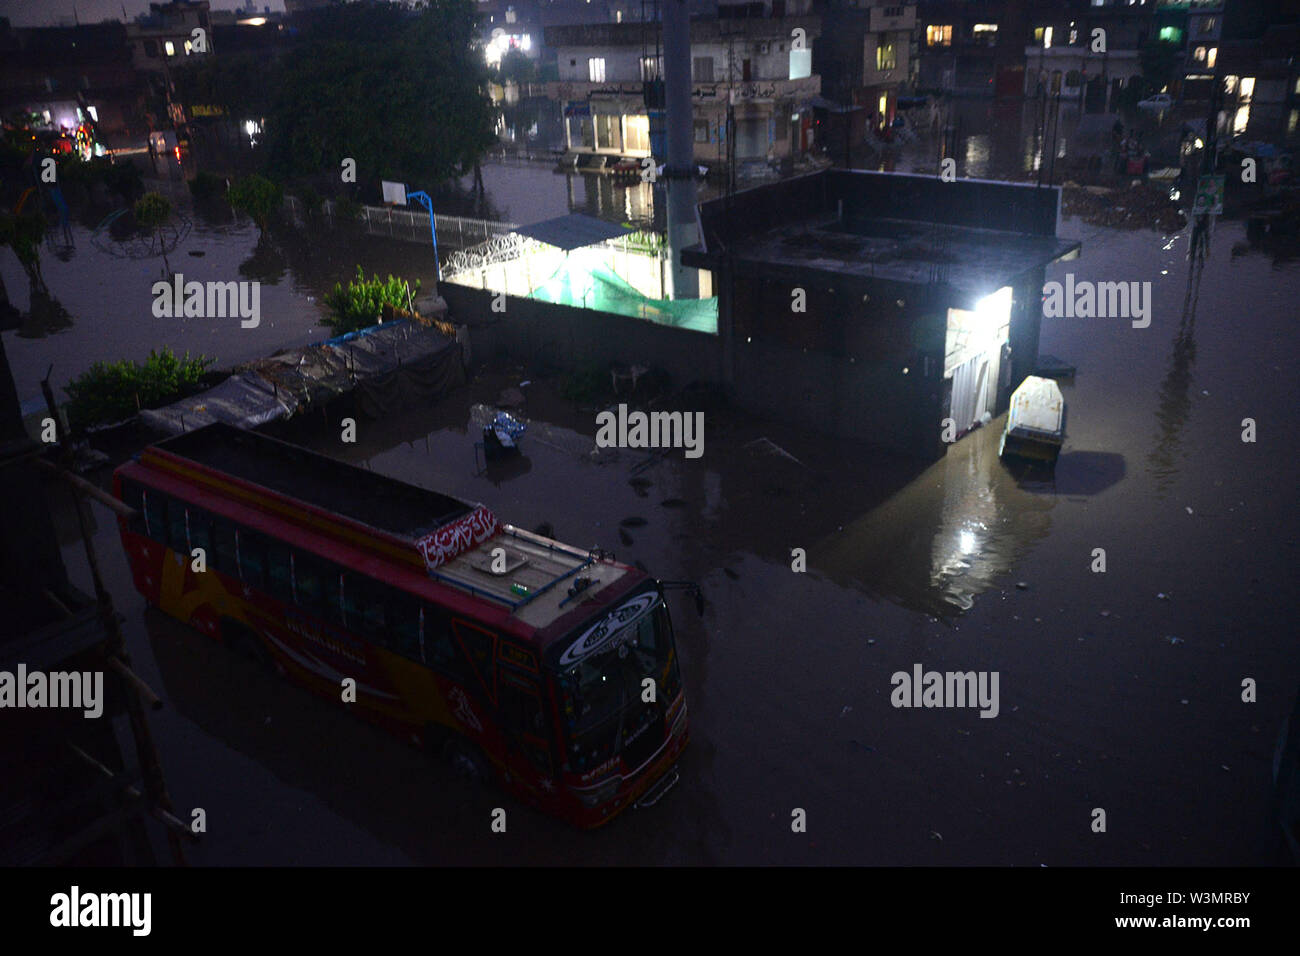 People facing troubles due to rainy water accumulated at China Scheme area as streets are presenting river view after the heavy monsoon rain in provincial. According to Met Department, heavy monsoon rain lashed Lahore and its adjoining areas in the wee hours of Tuesday. The incessant rain has flooded roads and streets in many parts of the city, rainwater entered houses in several low-lying areas of Lahore while parts of the city witnessed power outage as more that 150 Lesco feeders tripped soon after the rain started. Credit: PACIFIC PRESS/Alamy Live News - Stock Image